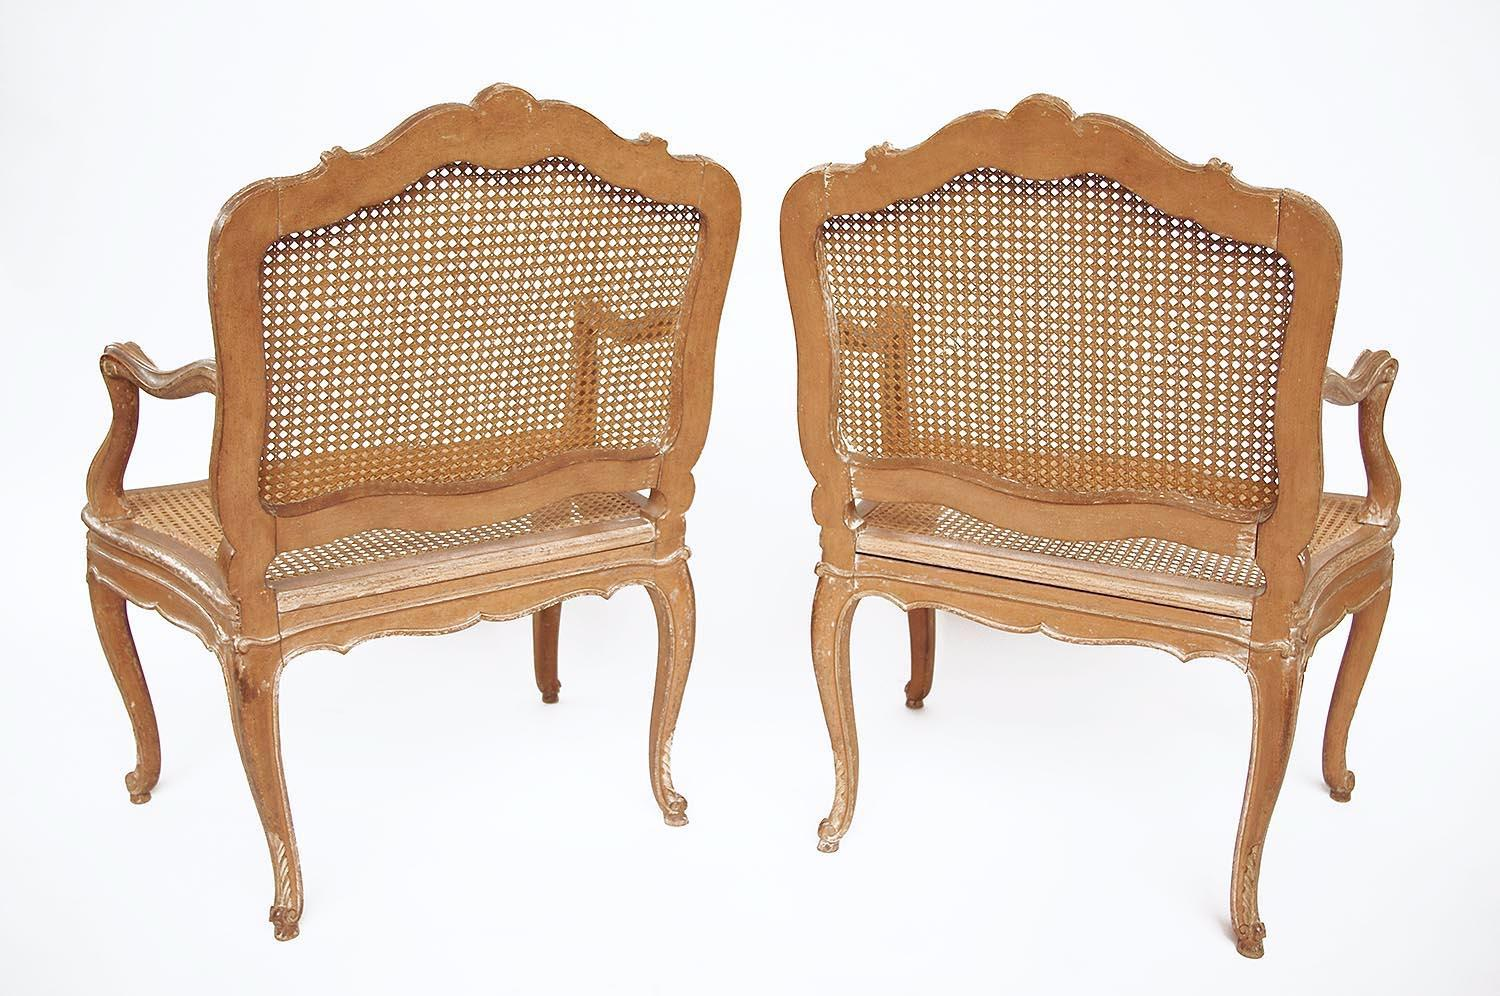 Fauteuils Cannés Louis Xv Pair Of Canned Louis Xv Style Armchairs In Cream Lacquered Wood Circa 1880